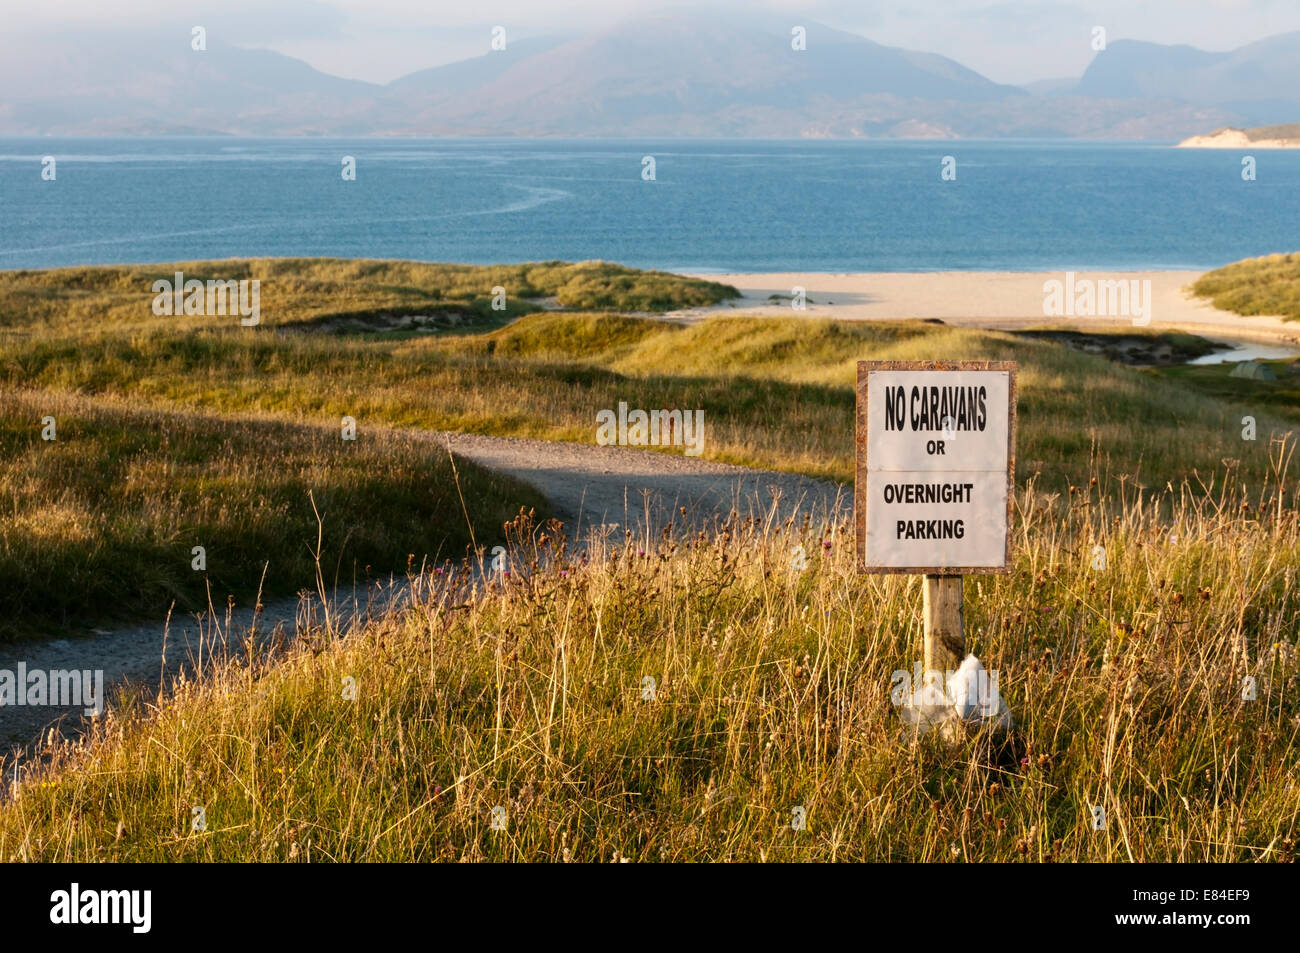 A sign beside Luskentyre Beach on the Isle of Harris prohibits camping or overnight parking. - Stock Image